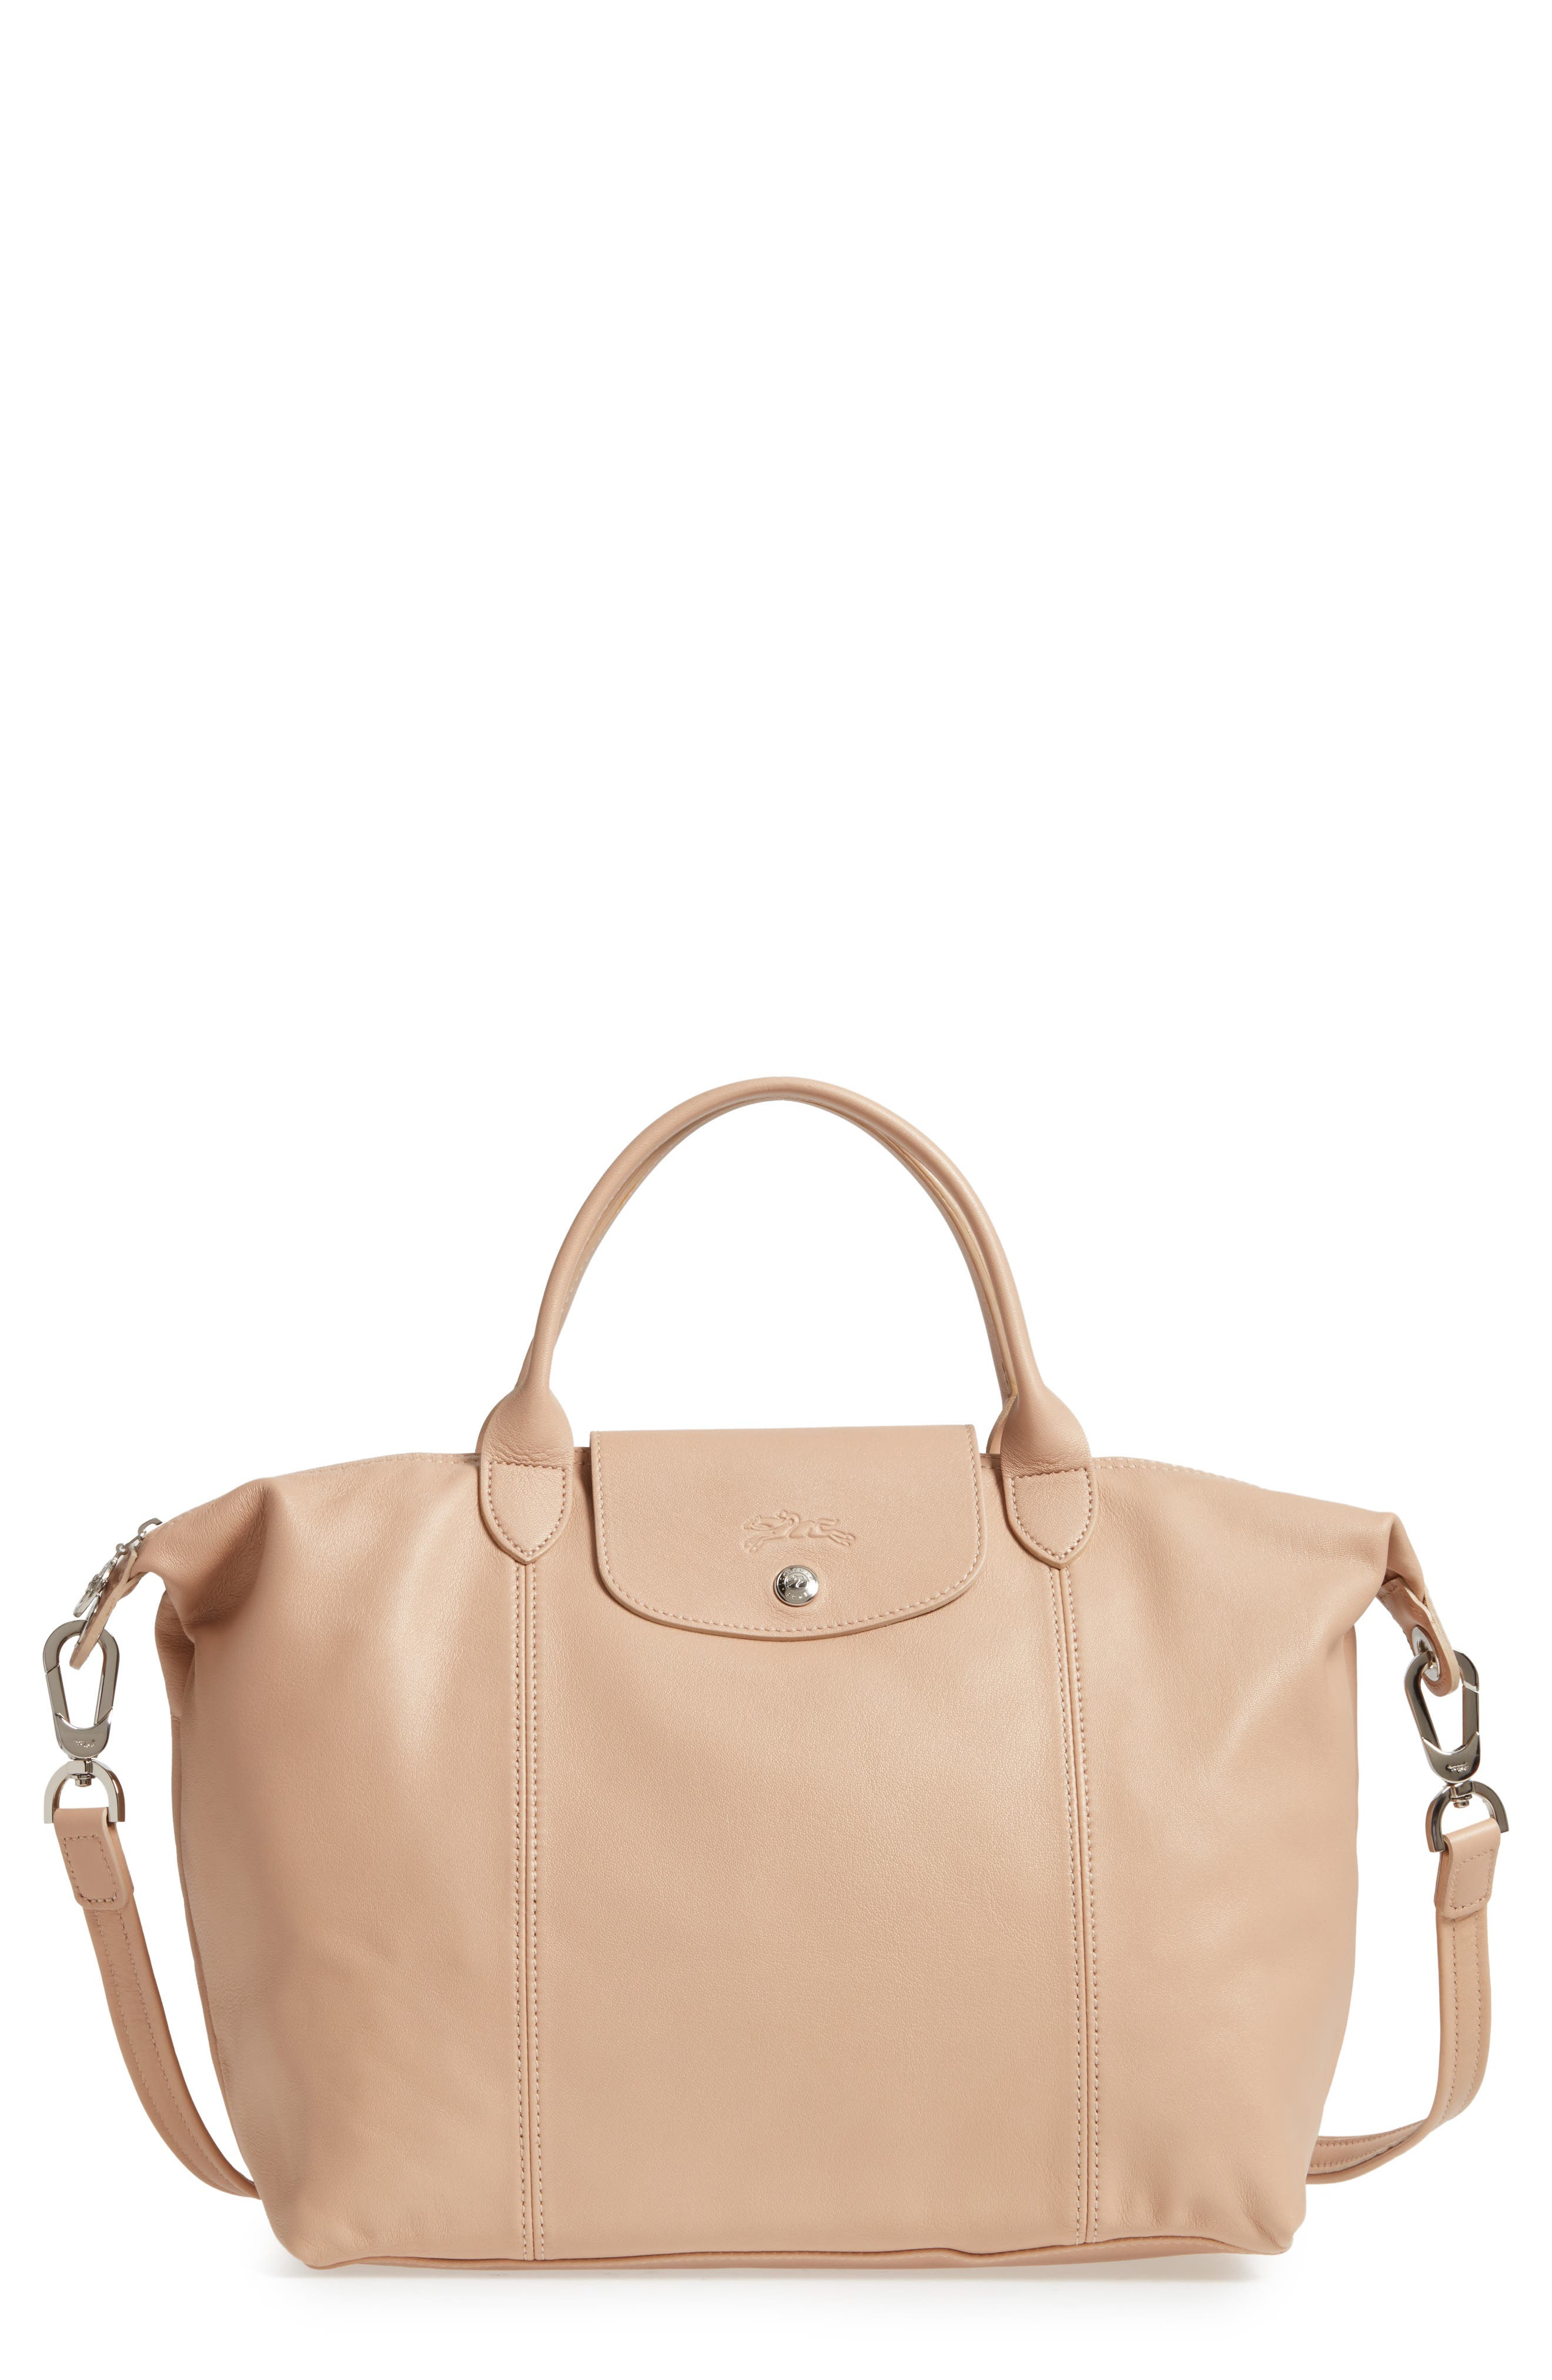 Medium 'Le Pliage Cuir' Leather Top Handle Tote,                             Main thumbnail 2, color,